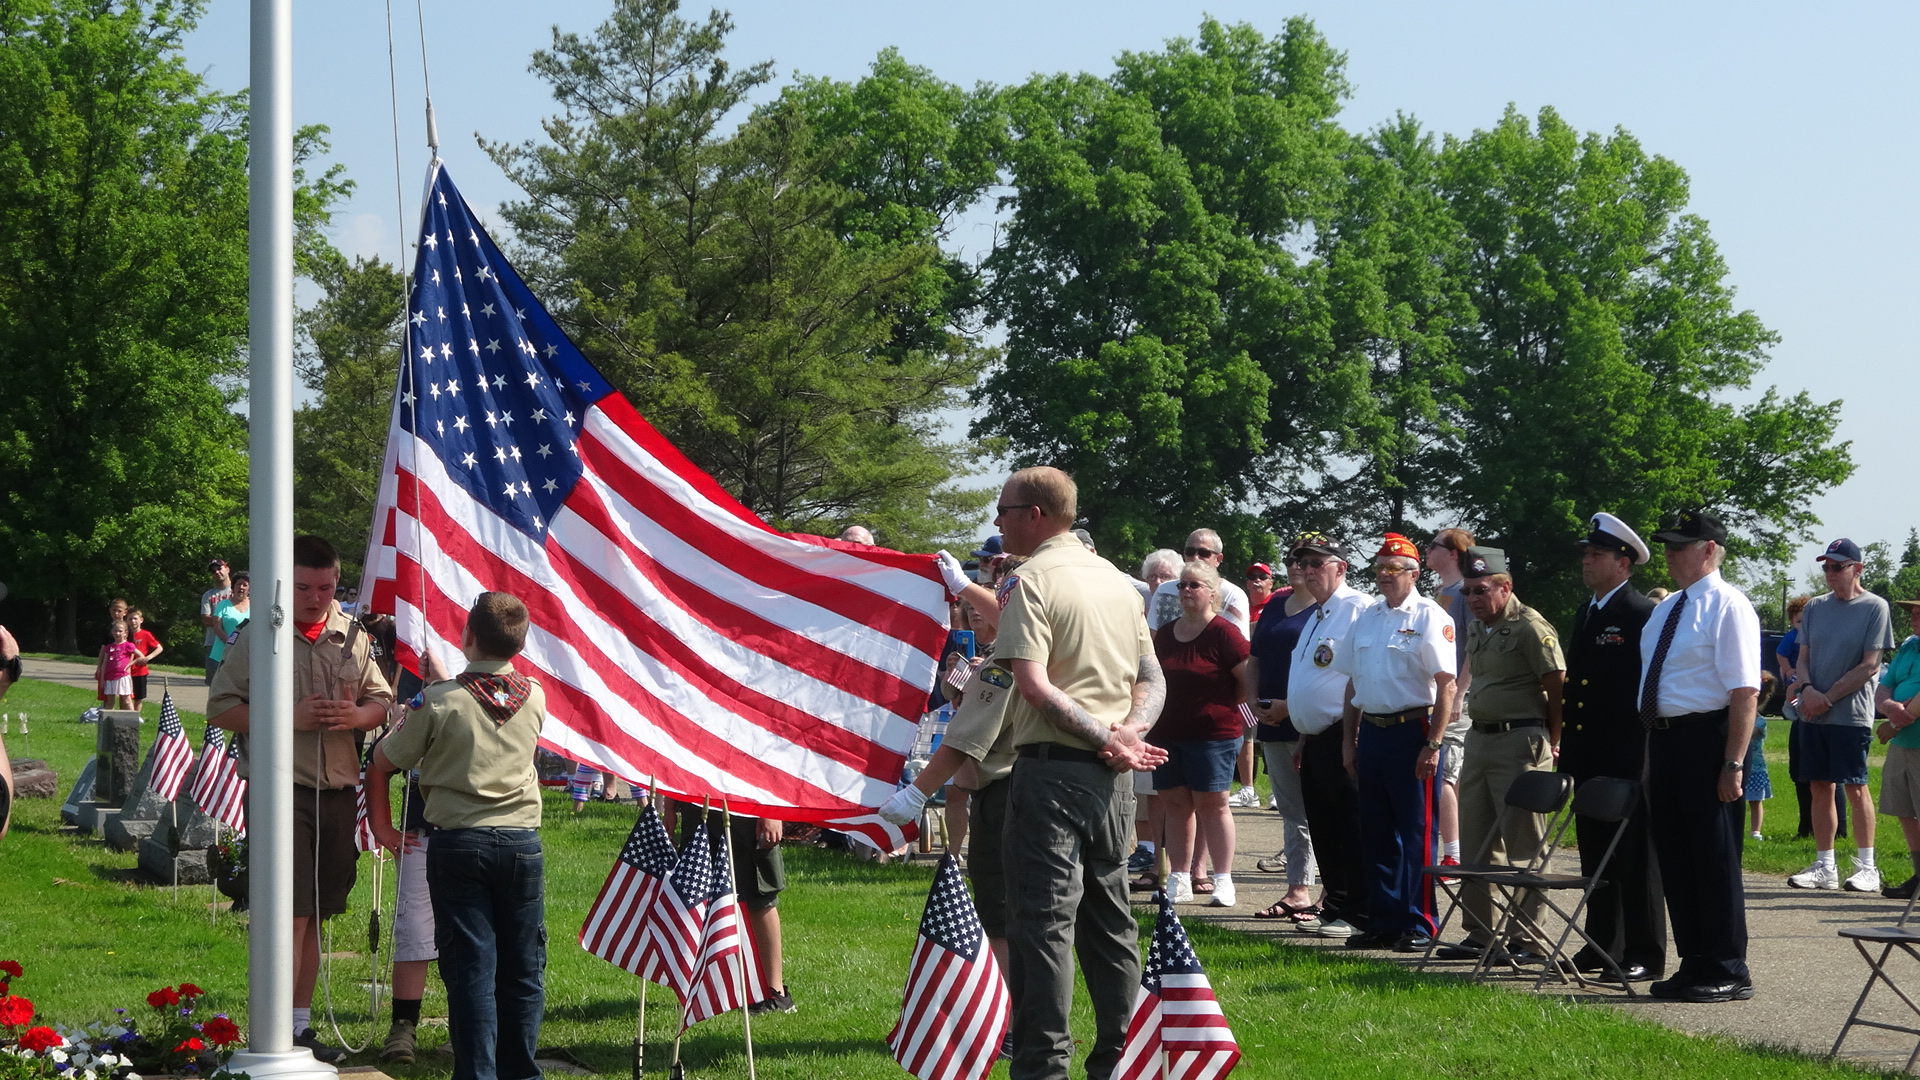 Cub Scout Pack 62 raises the flag at Brookfield's Memorial Day ceremony.